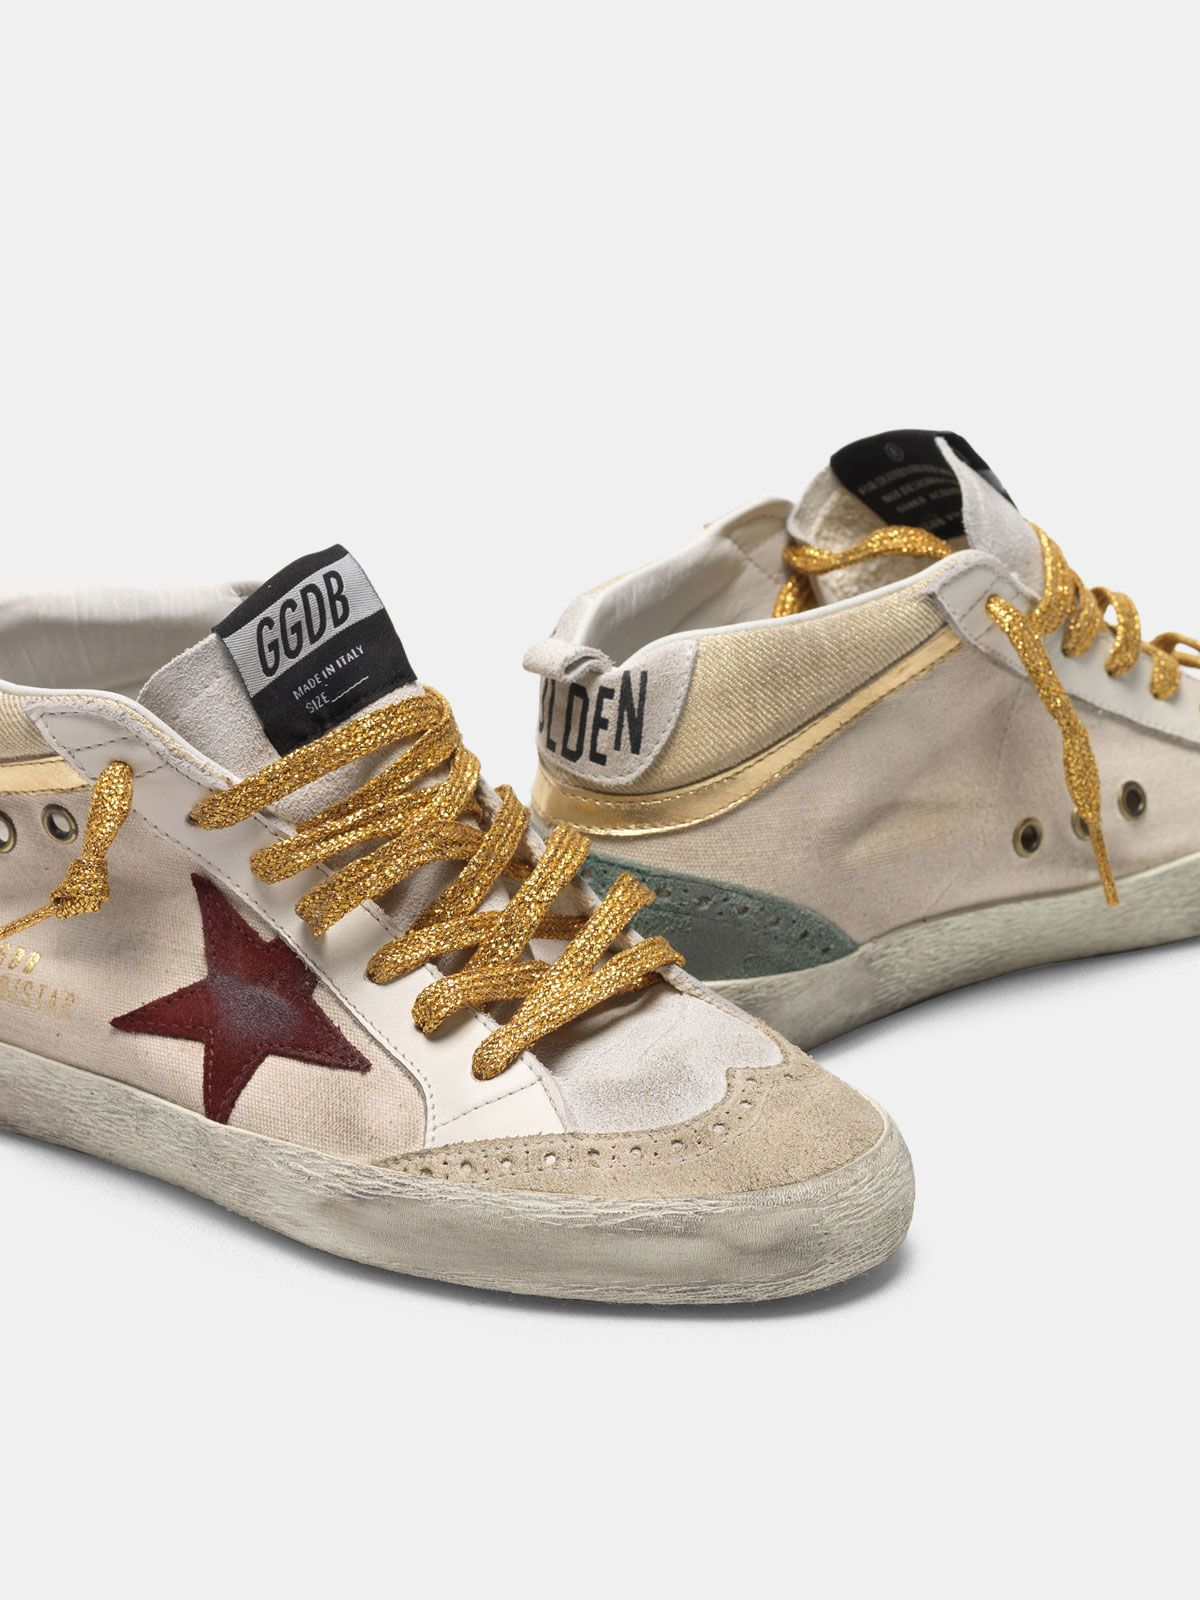 Golden Goose - Mid-Star sneakers in canvas with gold-coloured inserts and red star in